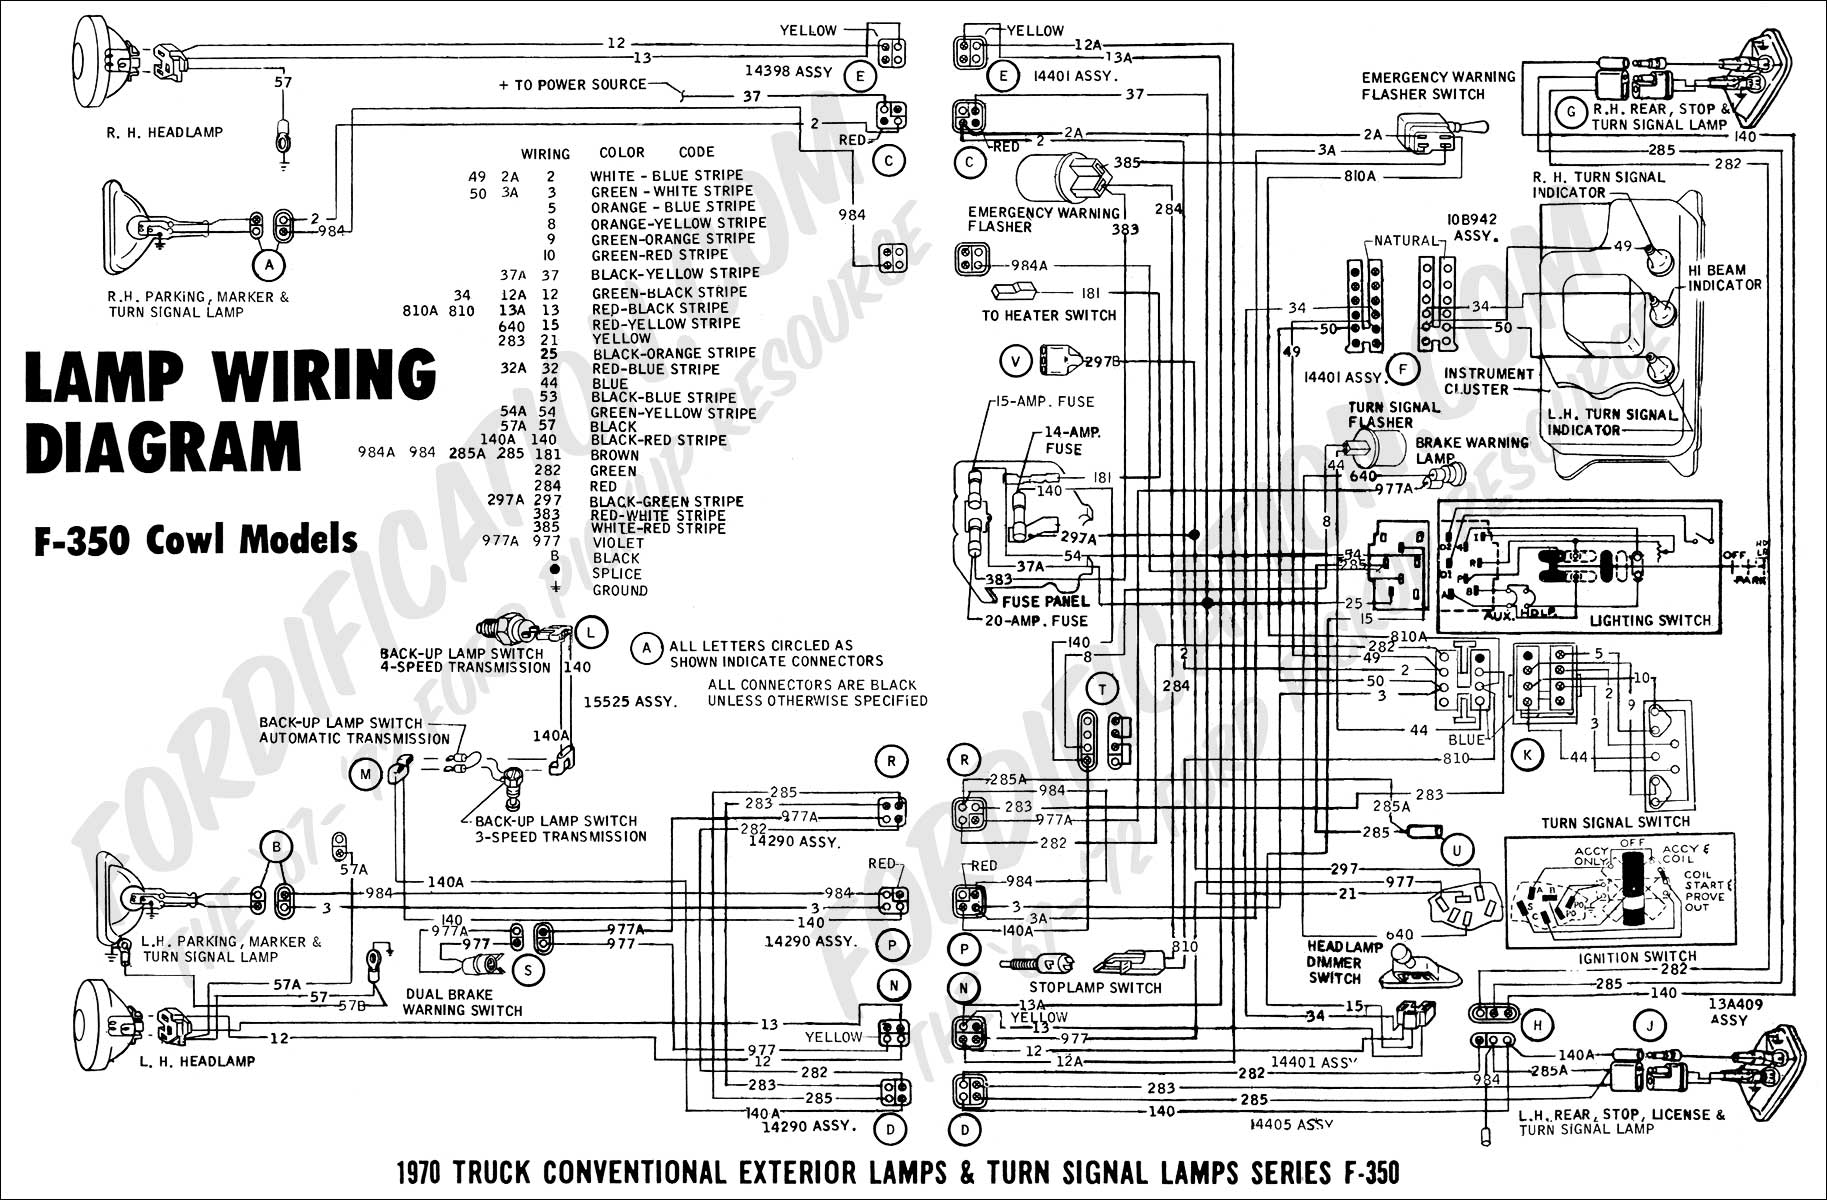 Chevy Cargo Light Wiring Diagram Get Free Image About Wiring Diagram